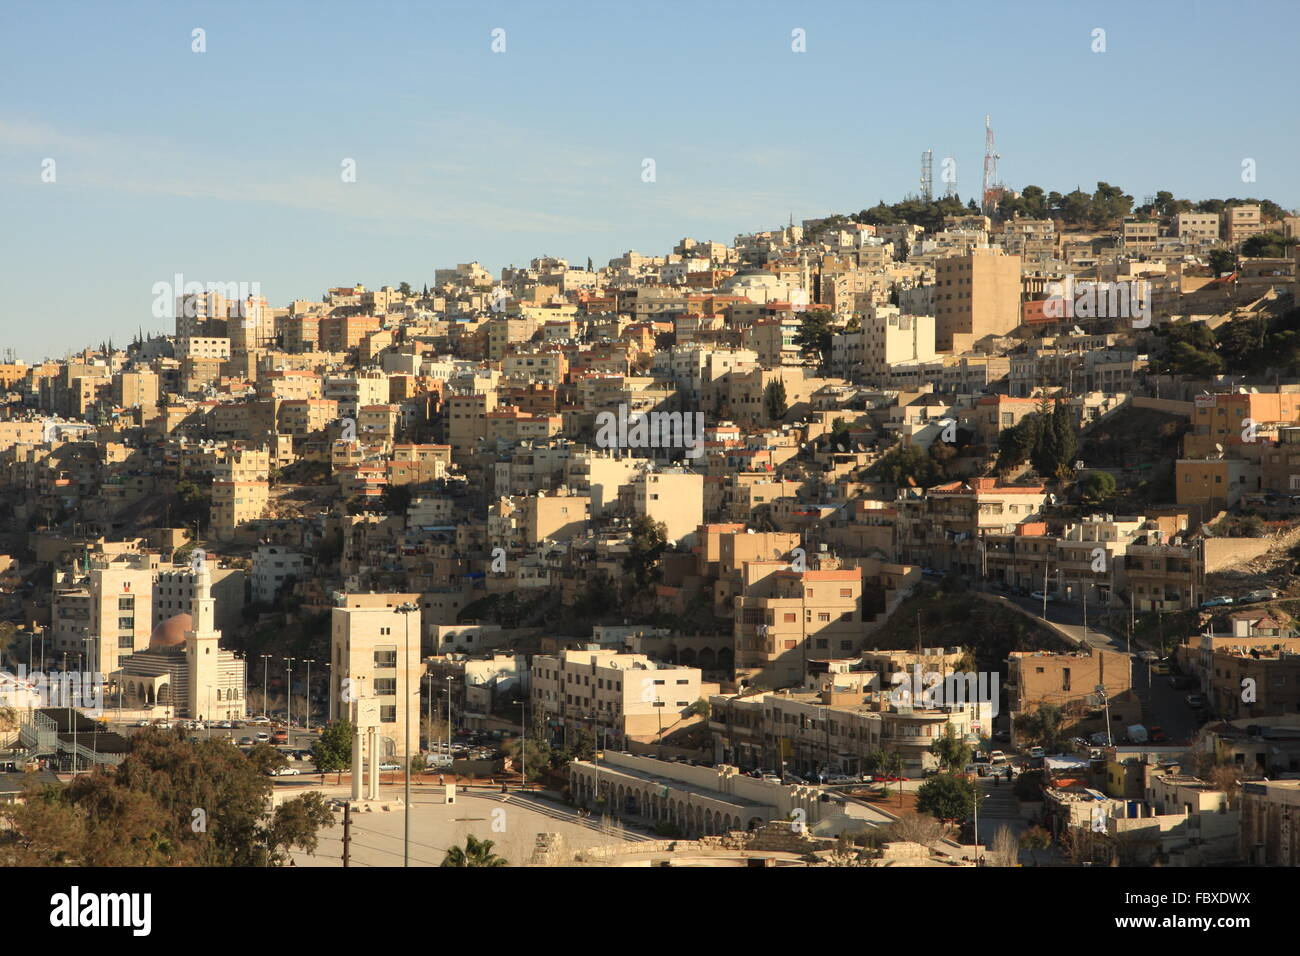 Amman Jordanie Photo Stock